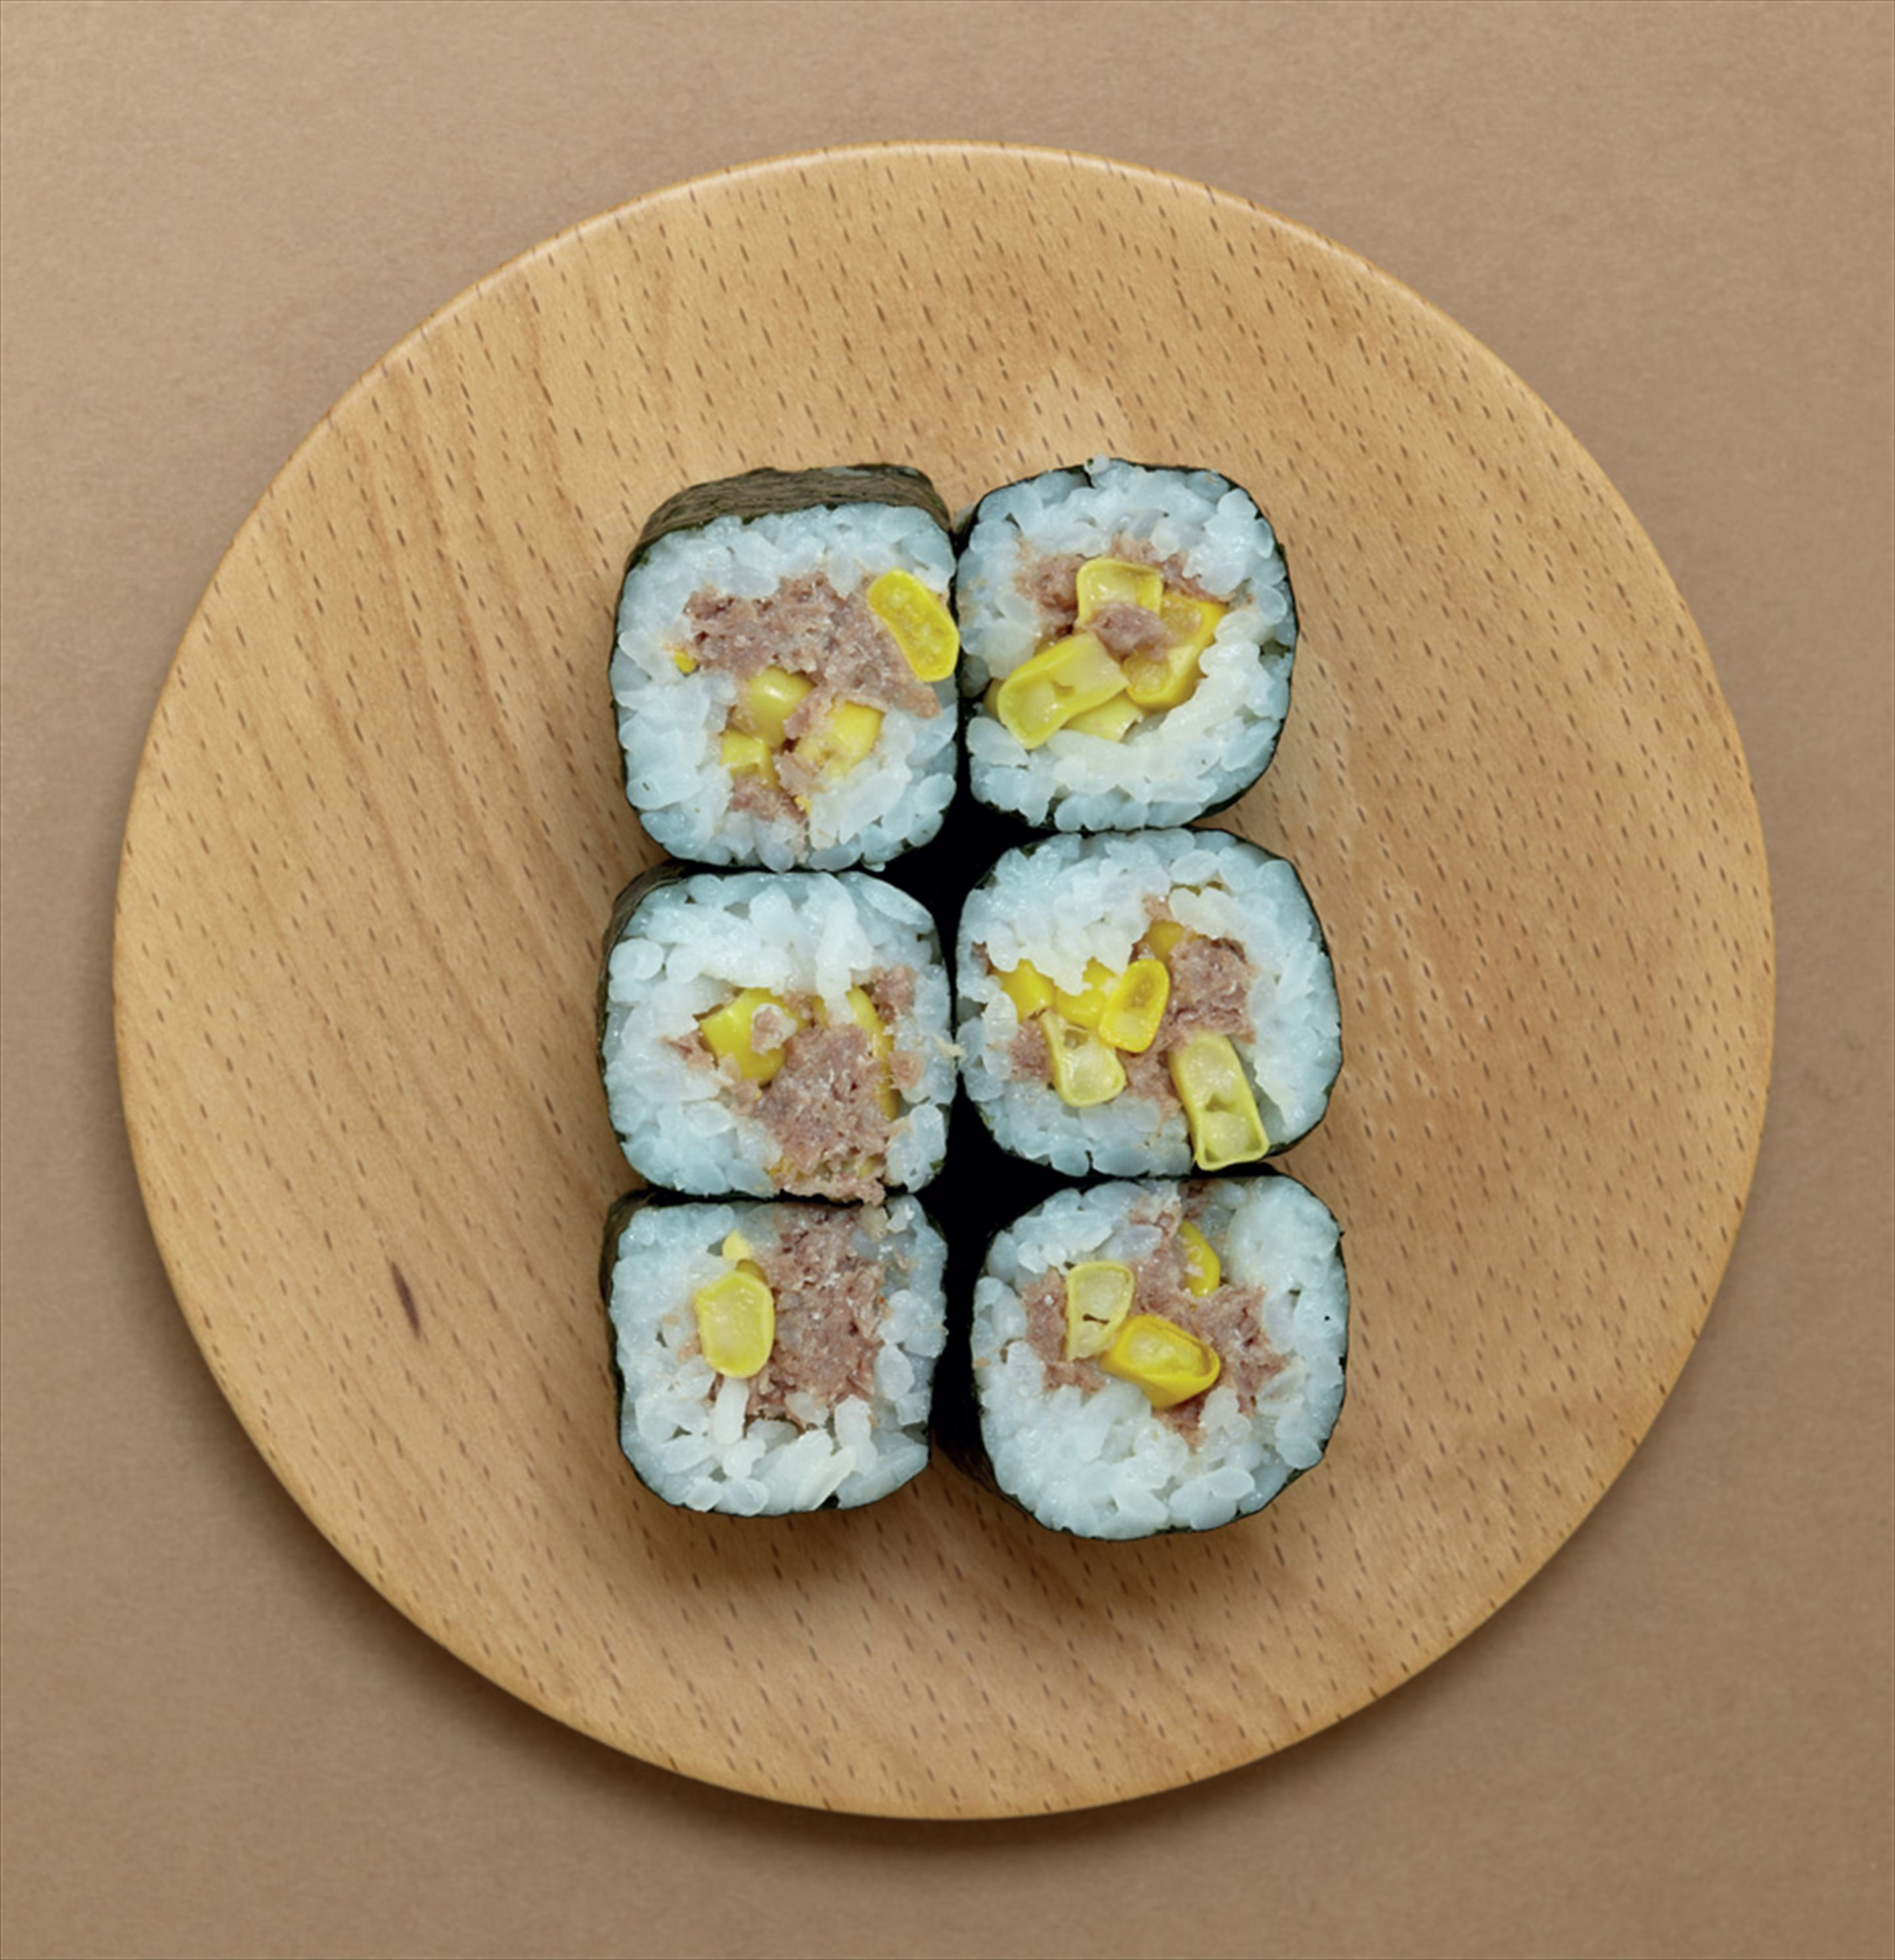 Corned beef and sweetcorn hosomaki rolls